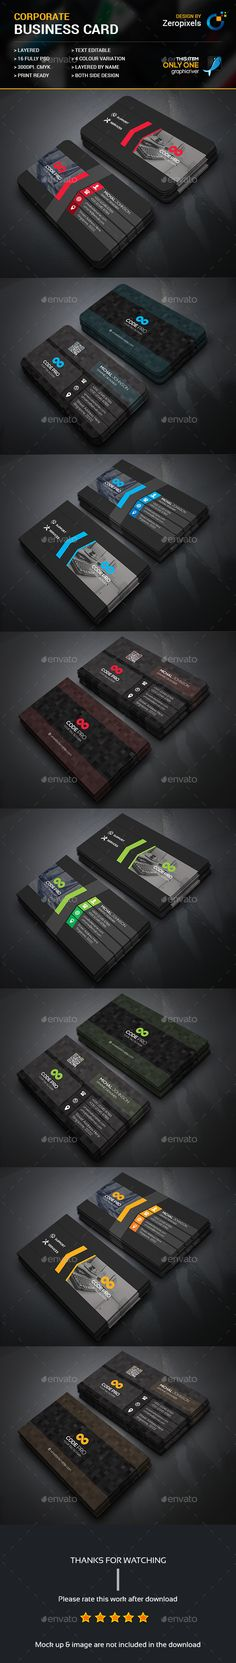 Corporate Business Card Bundle — Photoshop PSD #black #green • Available here → https://graphicriver.net/item/corporate-business-card-bundle/17969201?ref=pxcr